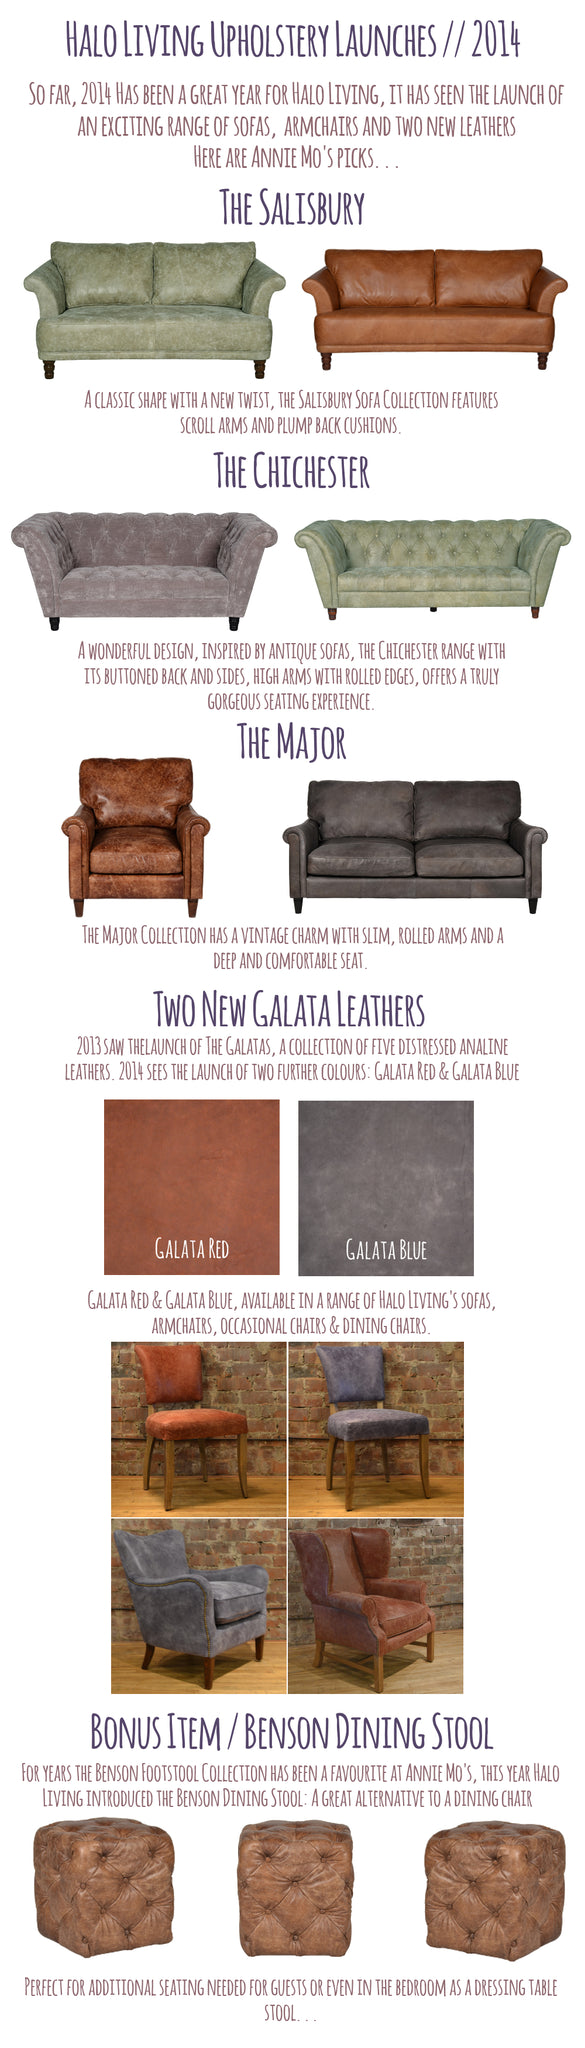 Annie Mo's | Halo Living | New Halo Sofas, Armchairs, Leathers 2014